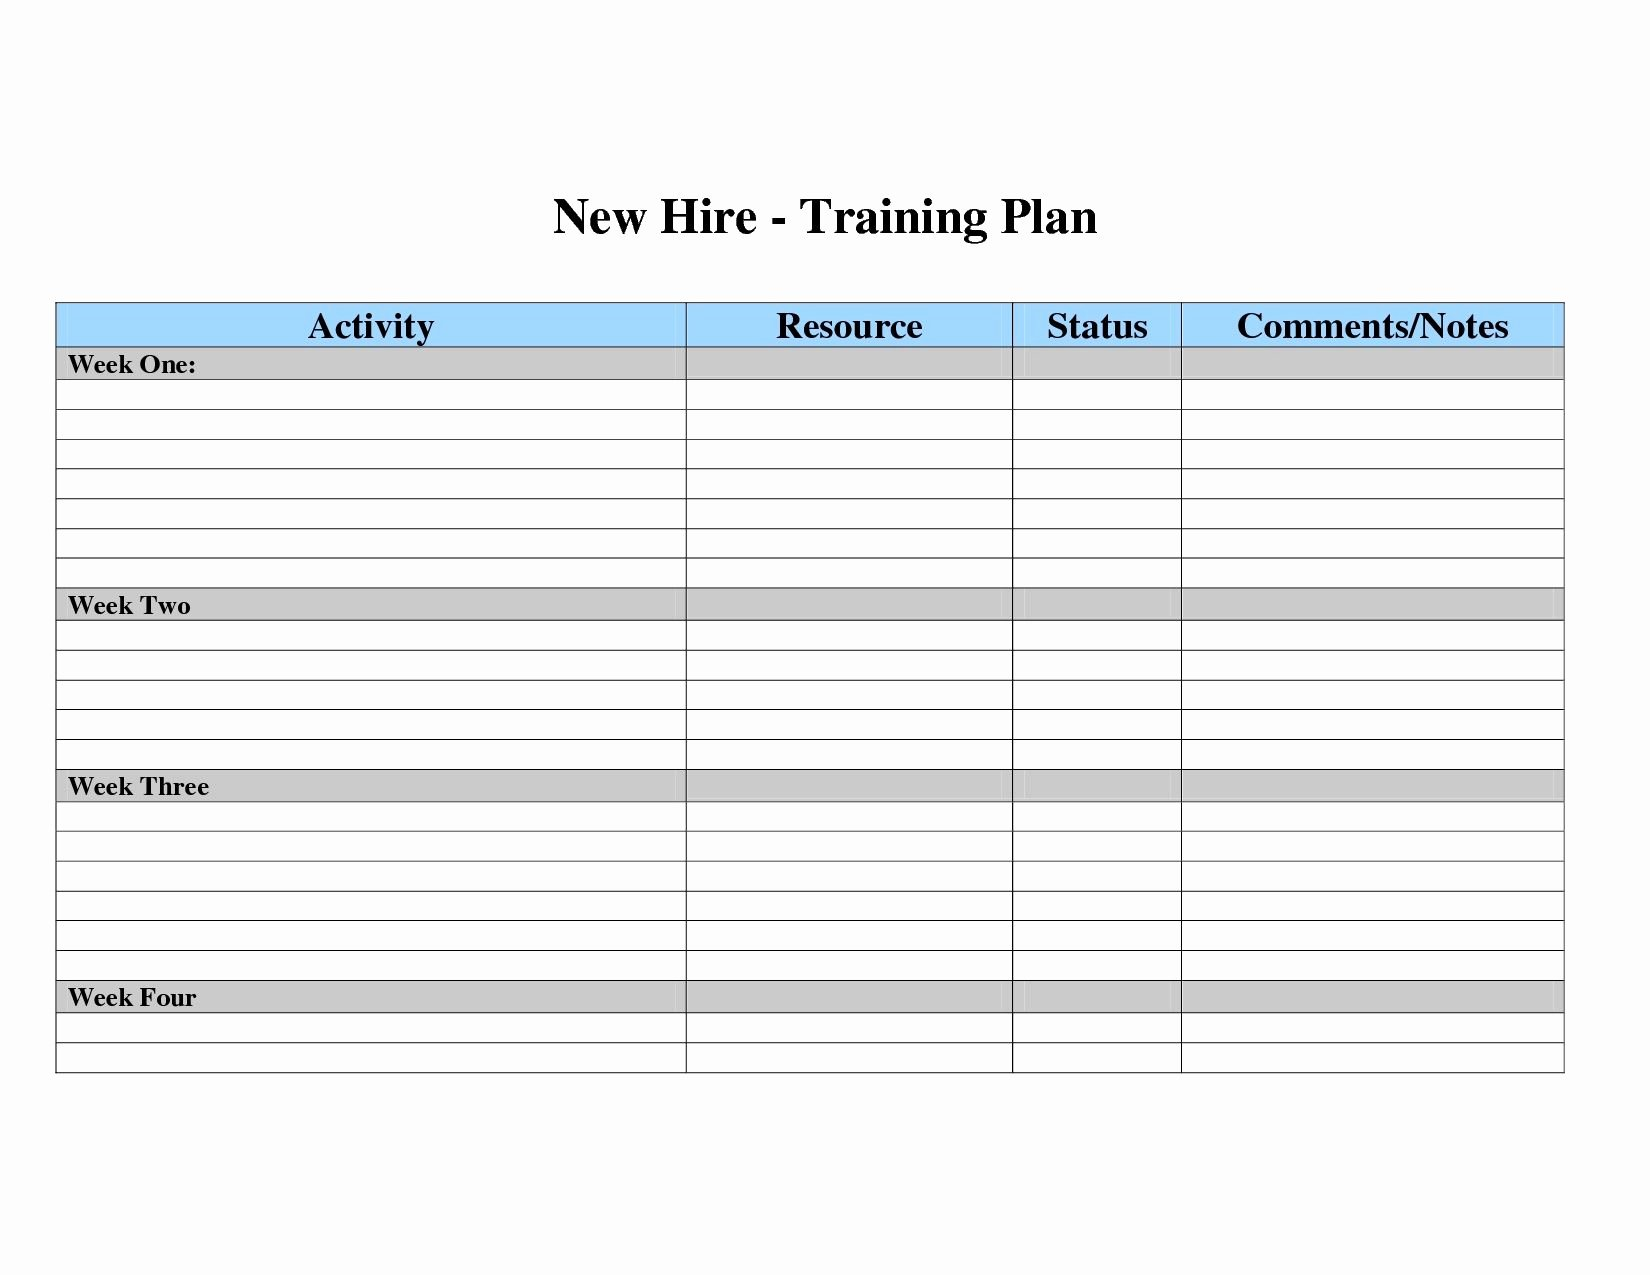 New Hire Training Plan Template Elegant Training Plan Template Excel